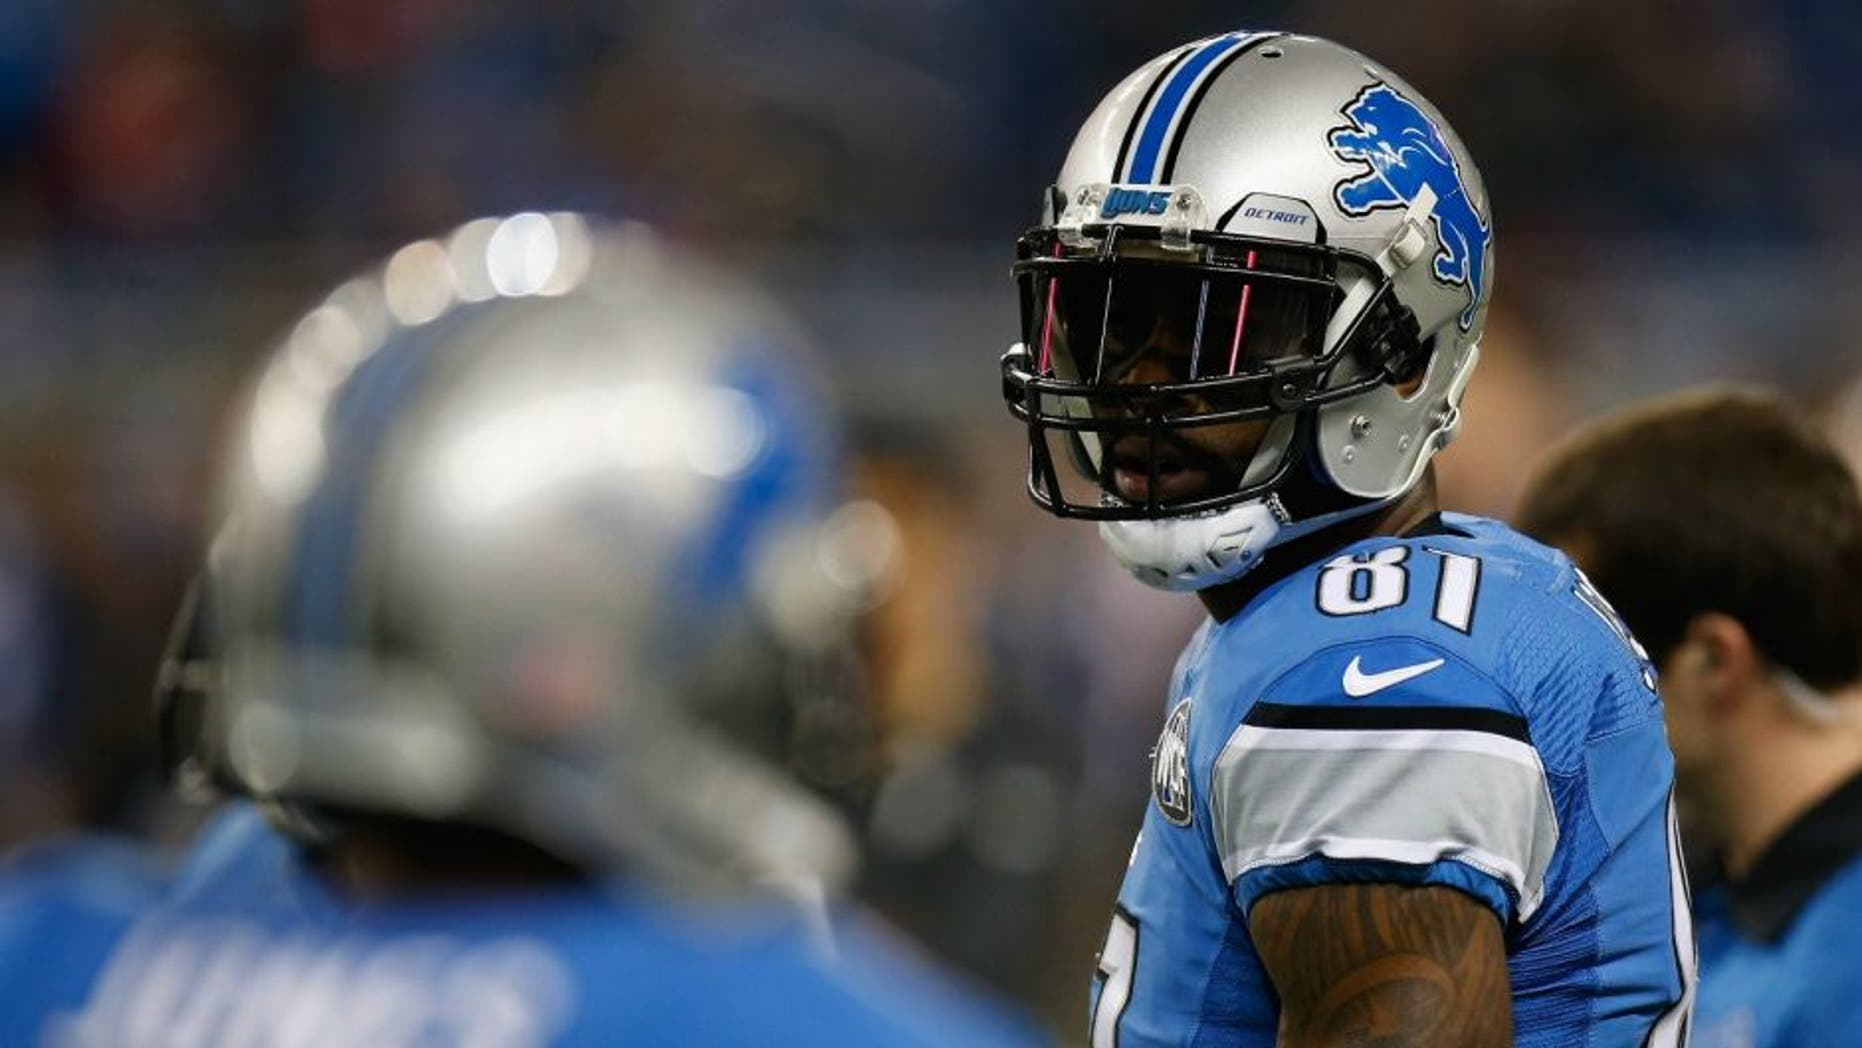 DETROIT, MI - DECEMBER 27: Calvin Johnson #81 of the Detroit Lions looks on prior to playing the San Francisco 49ers at Ford Field on December 27, 2015 in Detroit, Michigan. (Photo by Gregory Shamus/Getty Images)